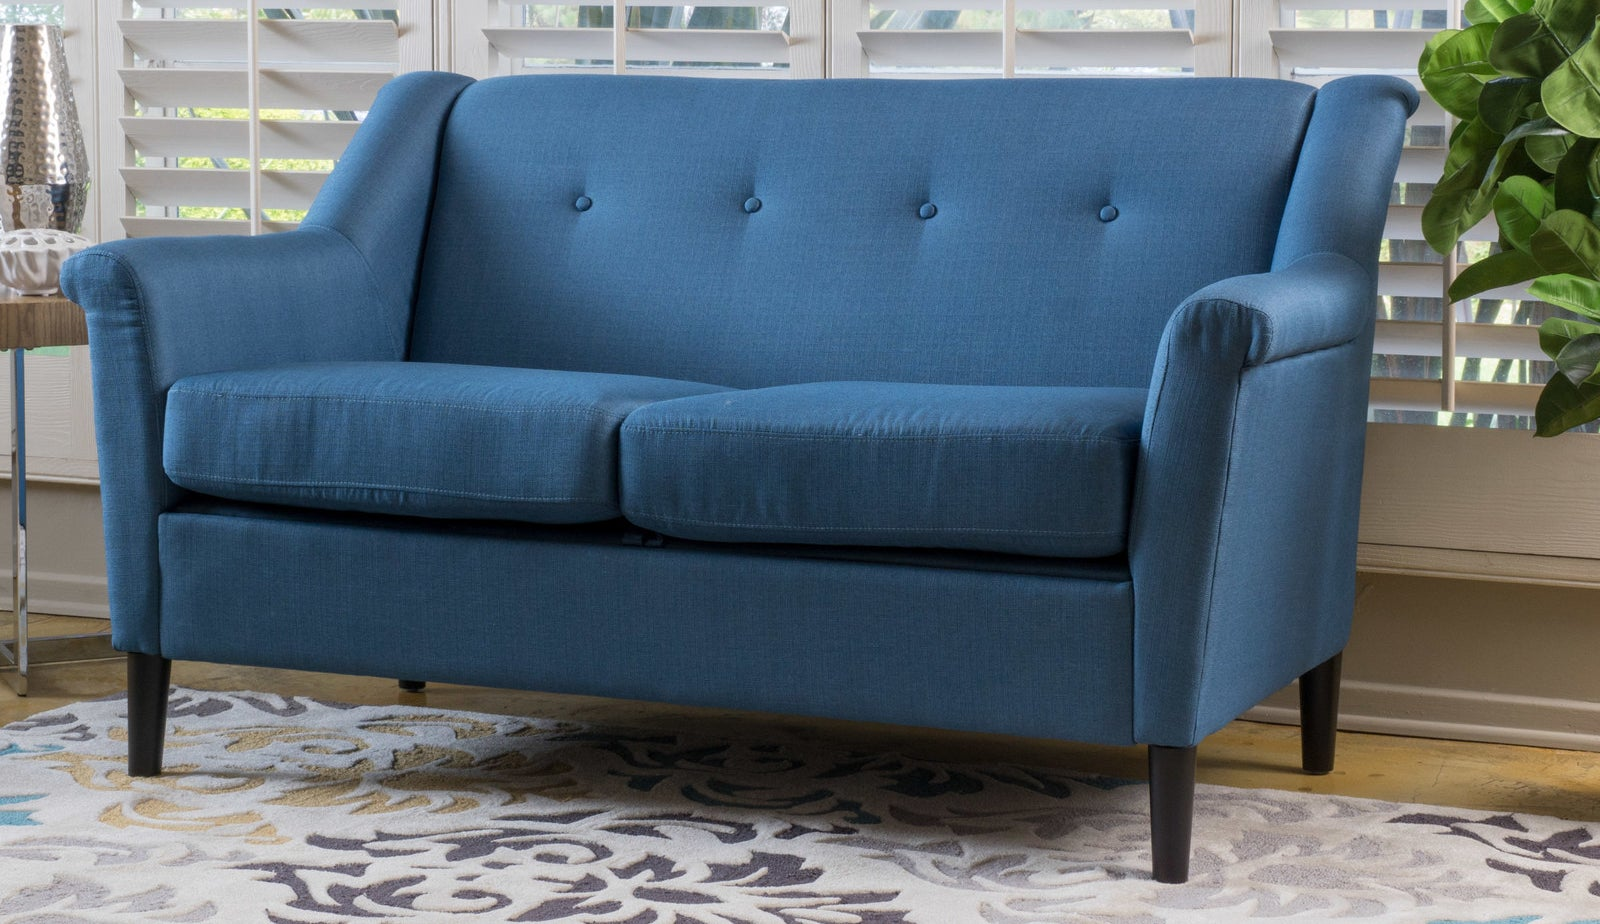 17 Of The Best Couches You Can Get On Sale Right Now